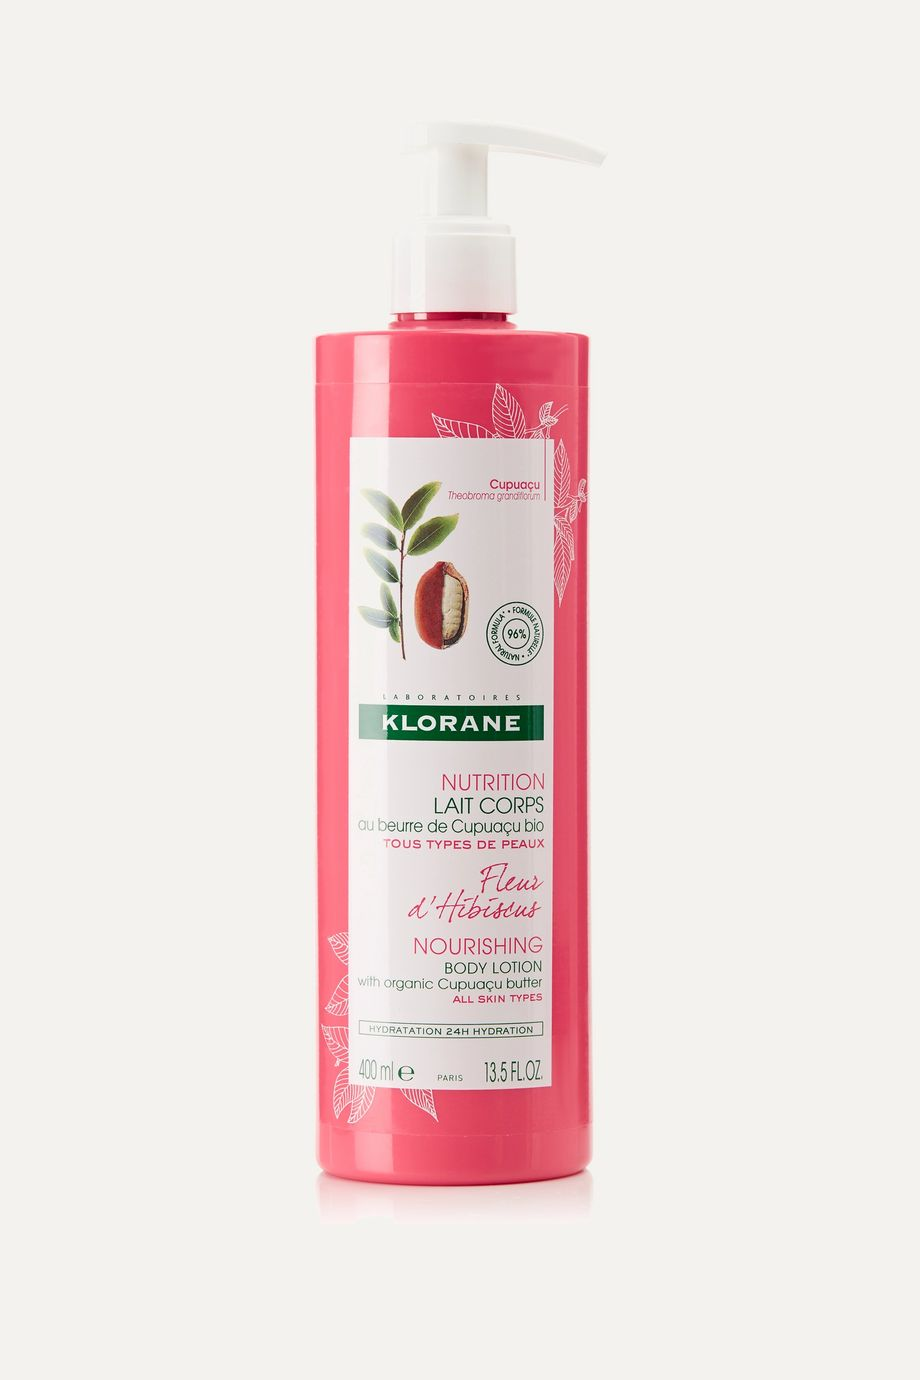 Klorane Hibiscus Flower Body Lotion with Cupuaçu Butter, 400ml